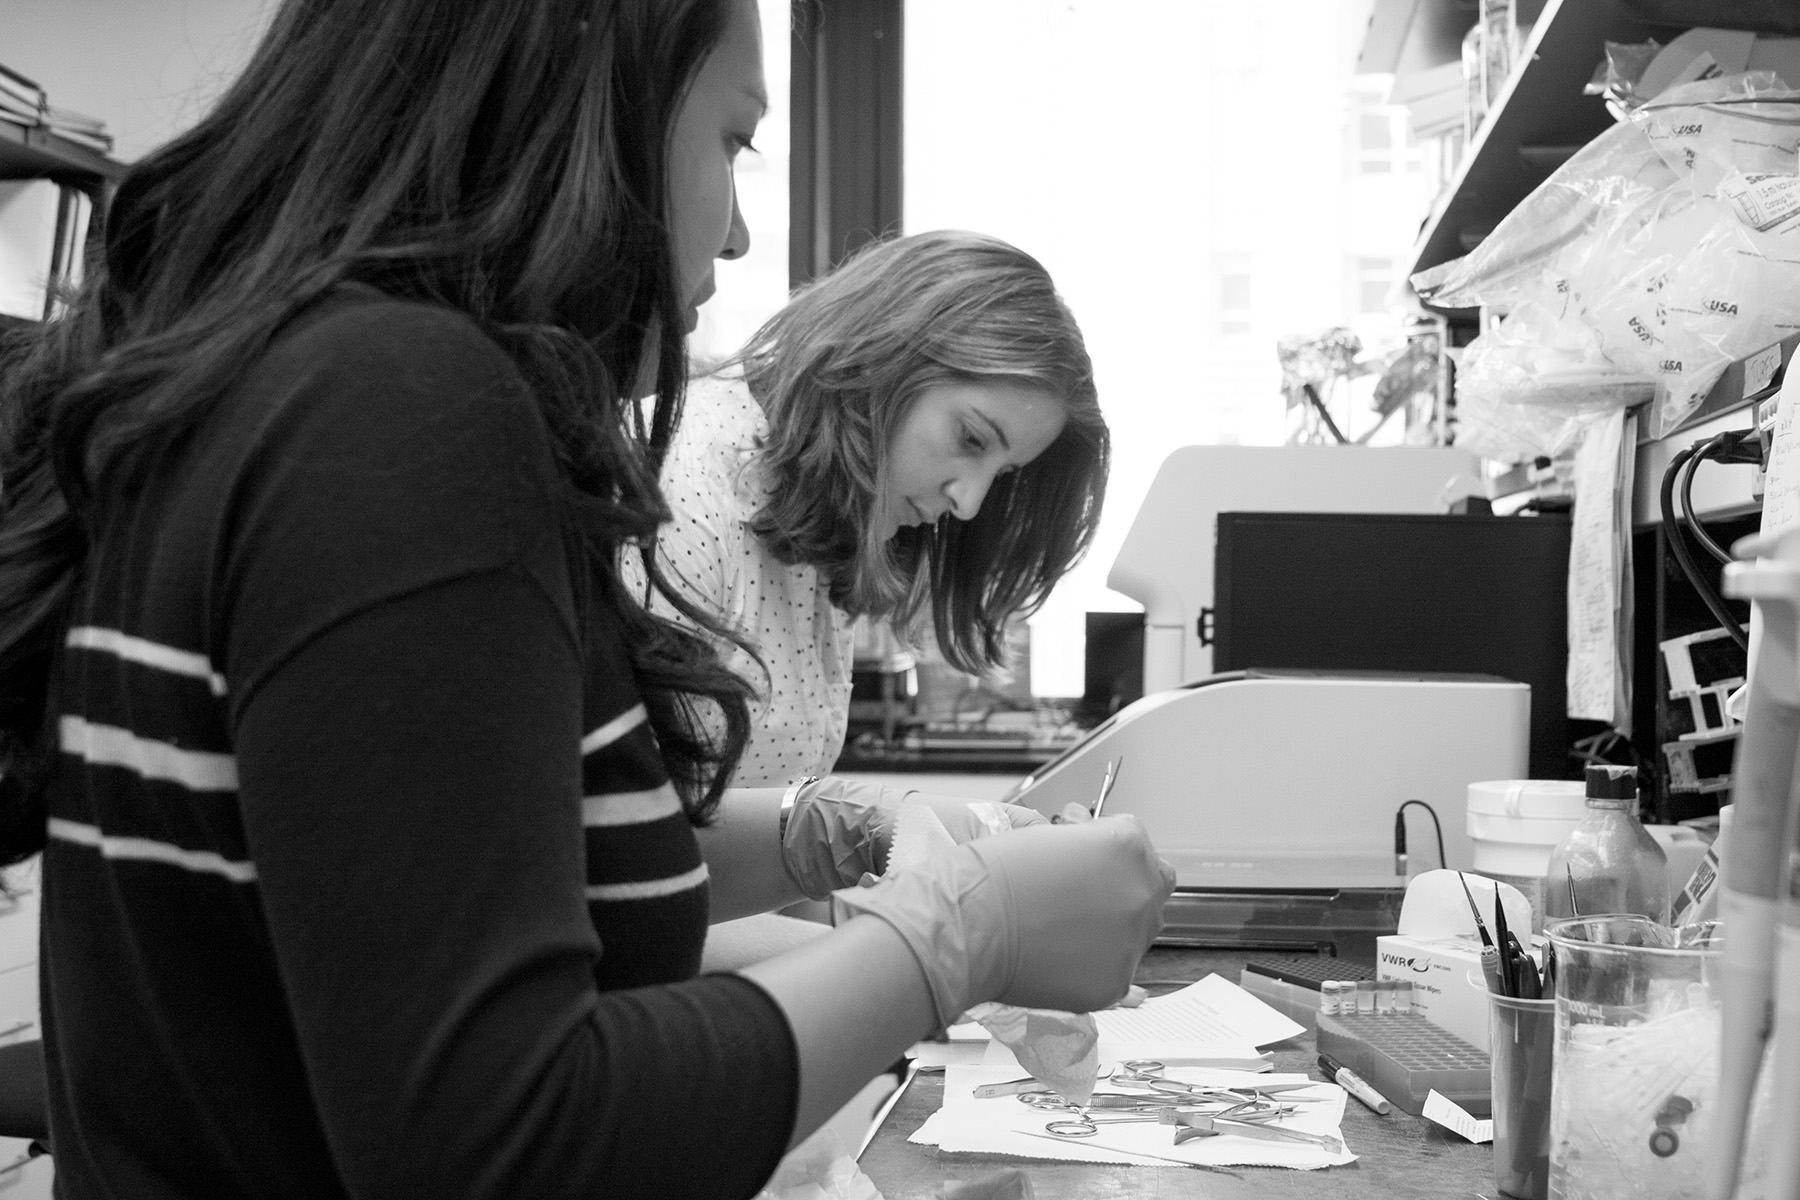 Vanessa and Meghin cleaning tools after tissue harvesting.